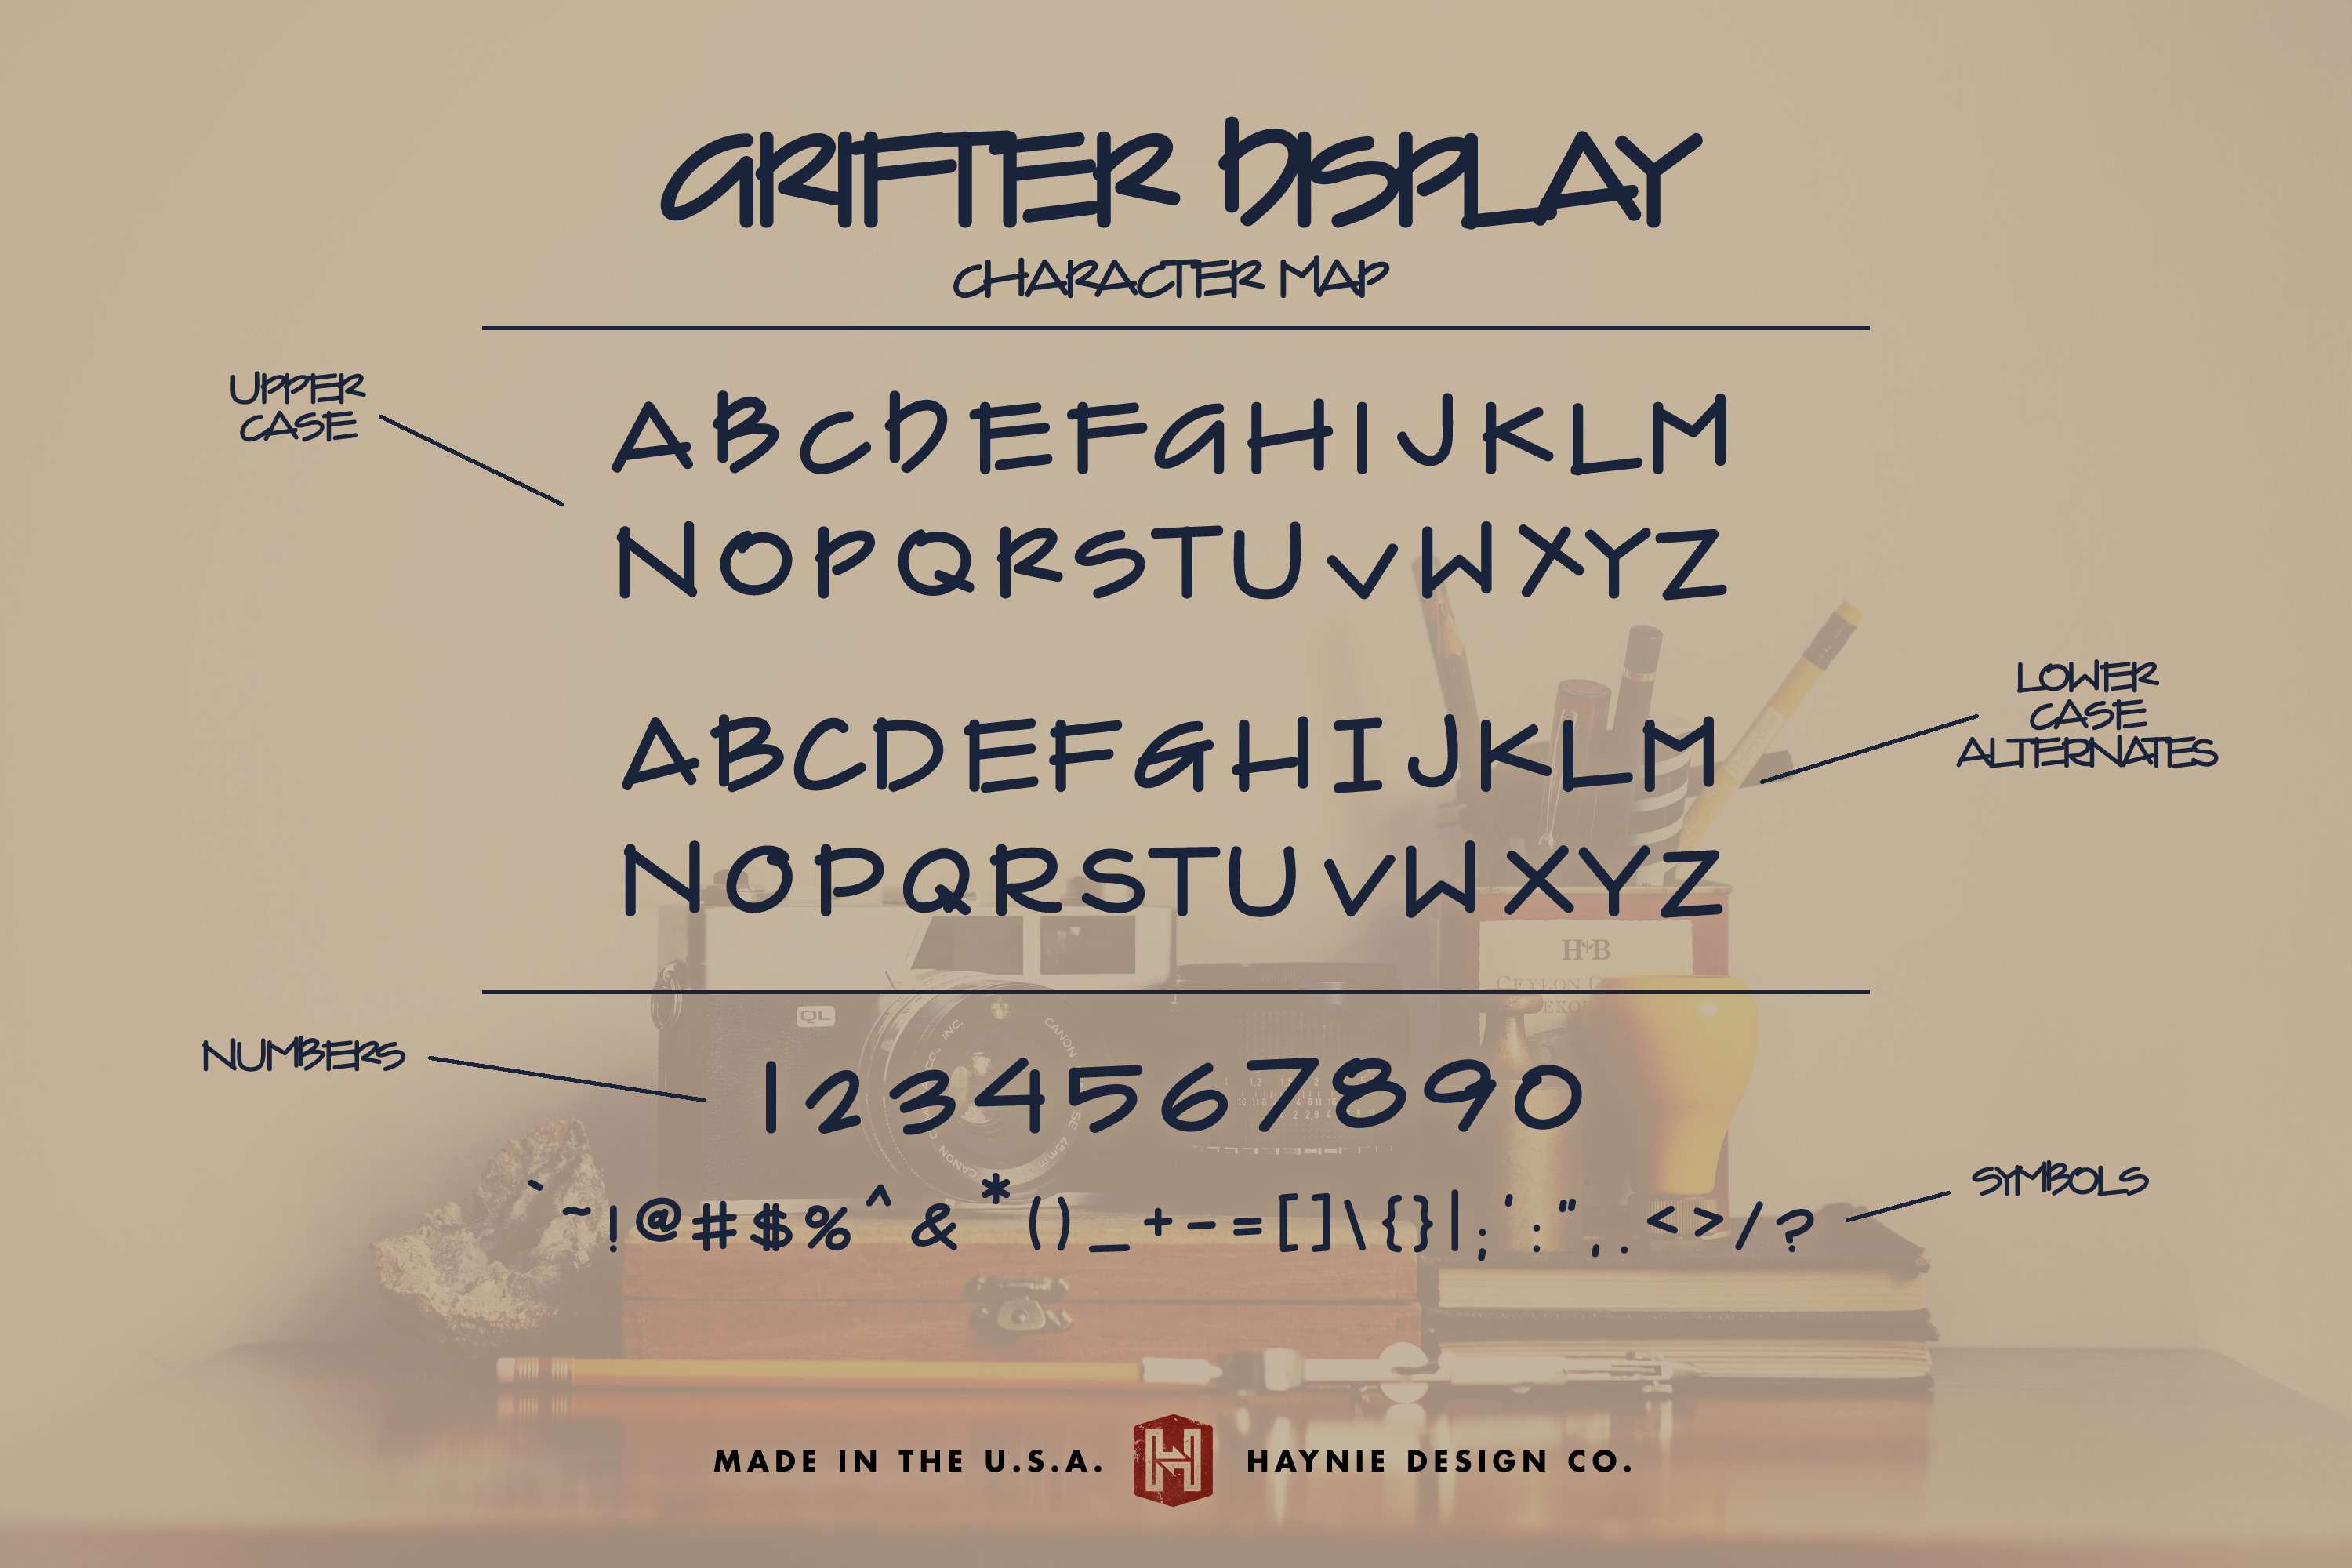 Grifter architect blueprint handwriting font bundles grifter architect blueprint handwriting font example image 7 malvernweather Gallery